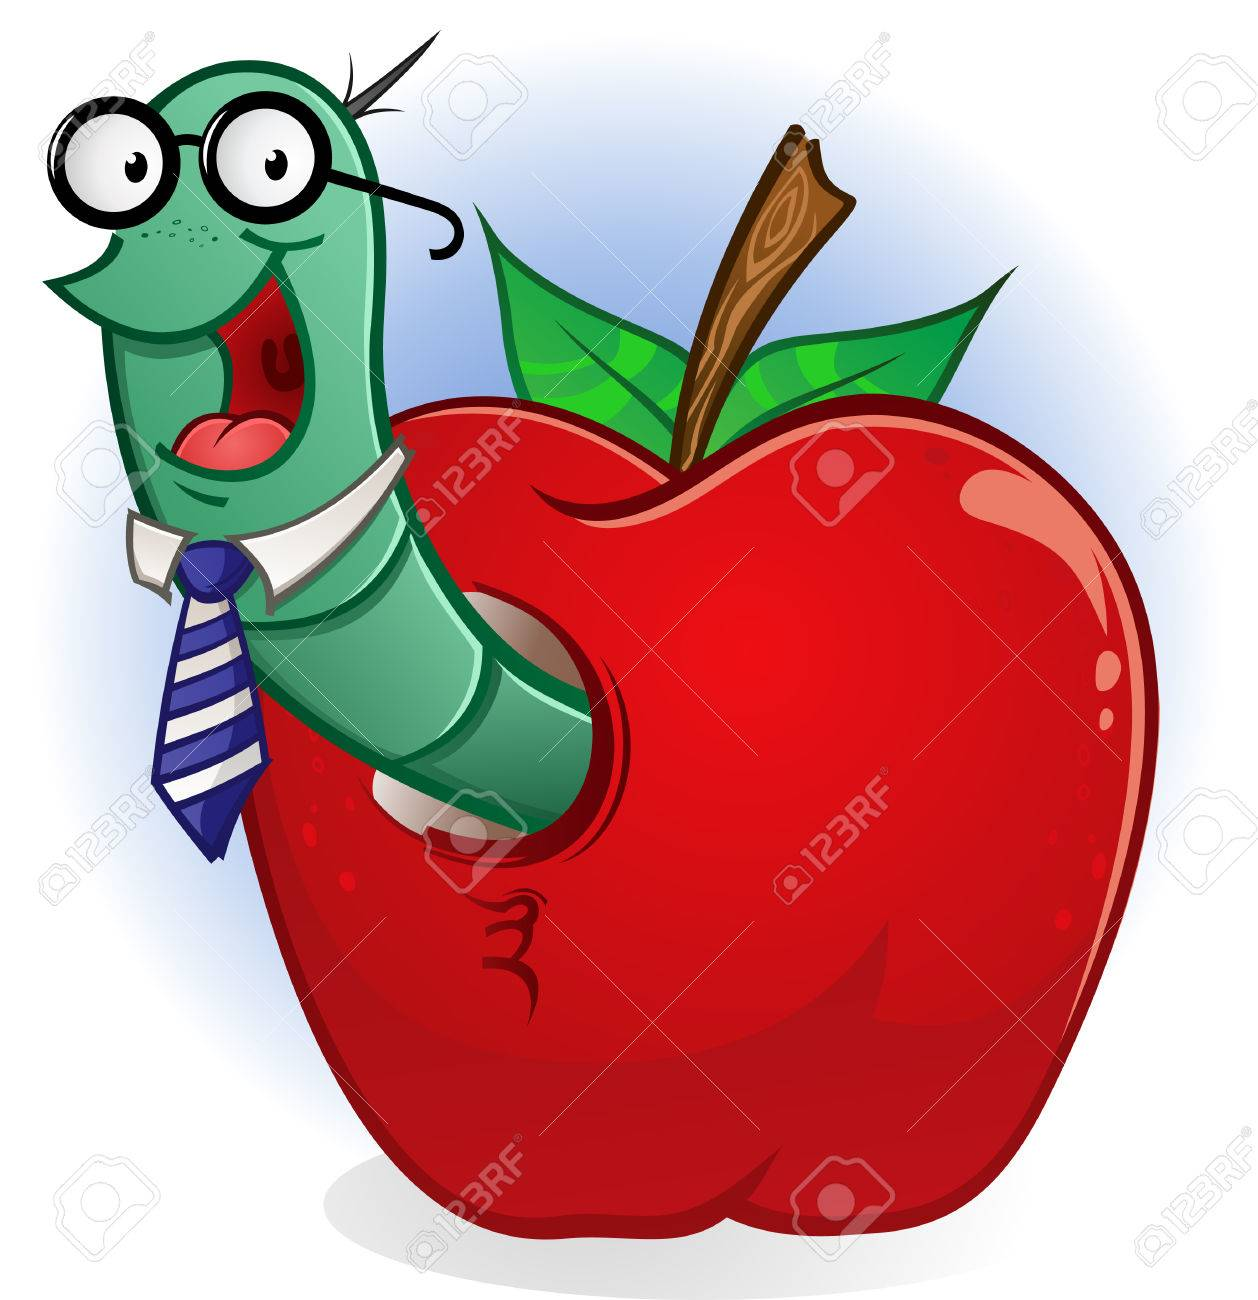 Bookworm Cartoon Character In An Apple Royalty Free Cliparts